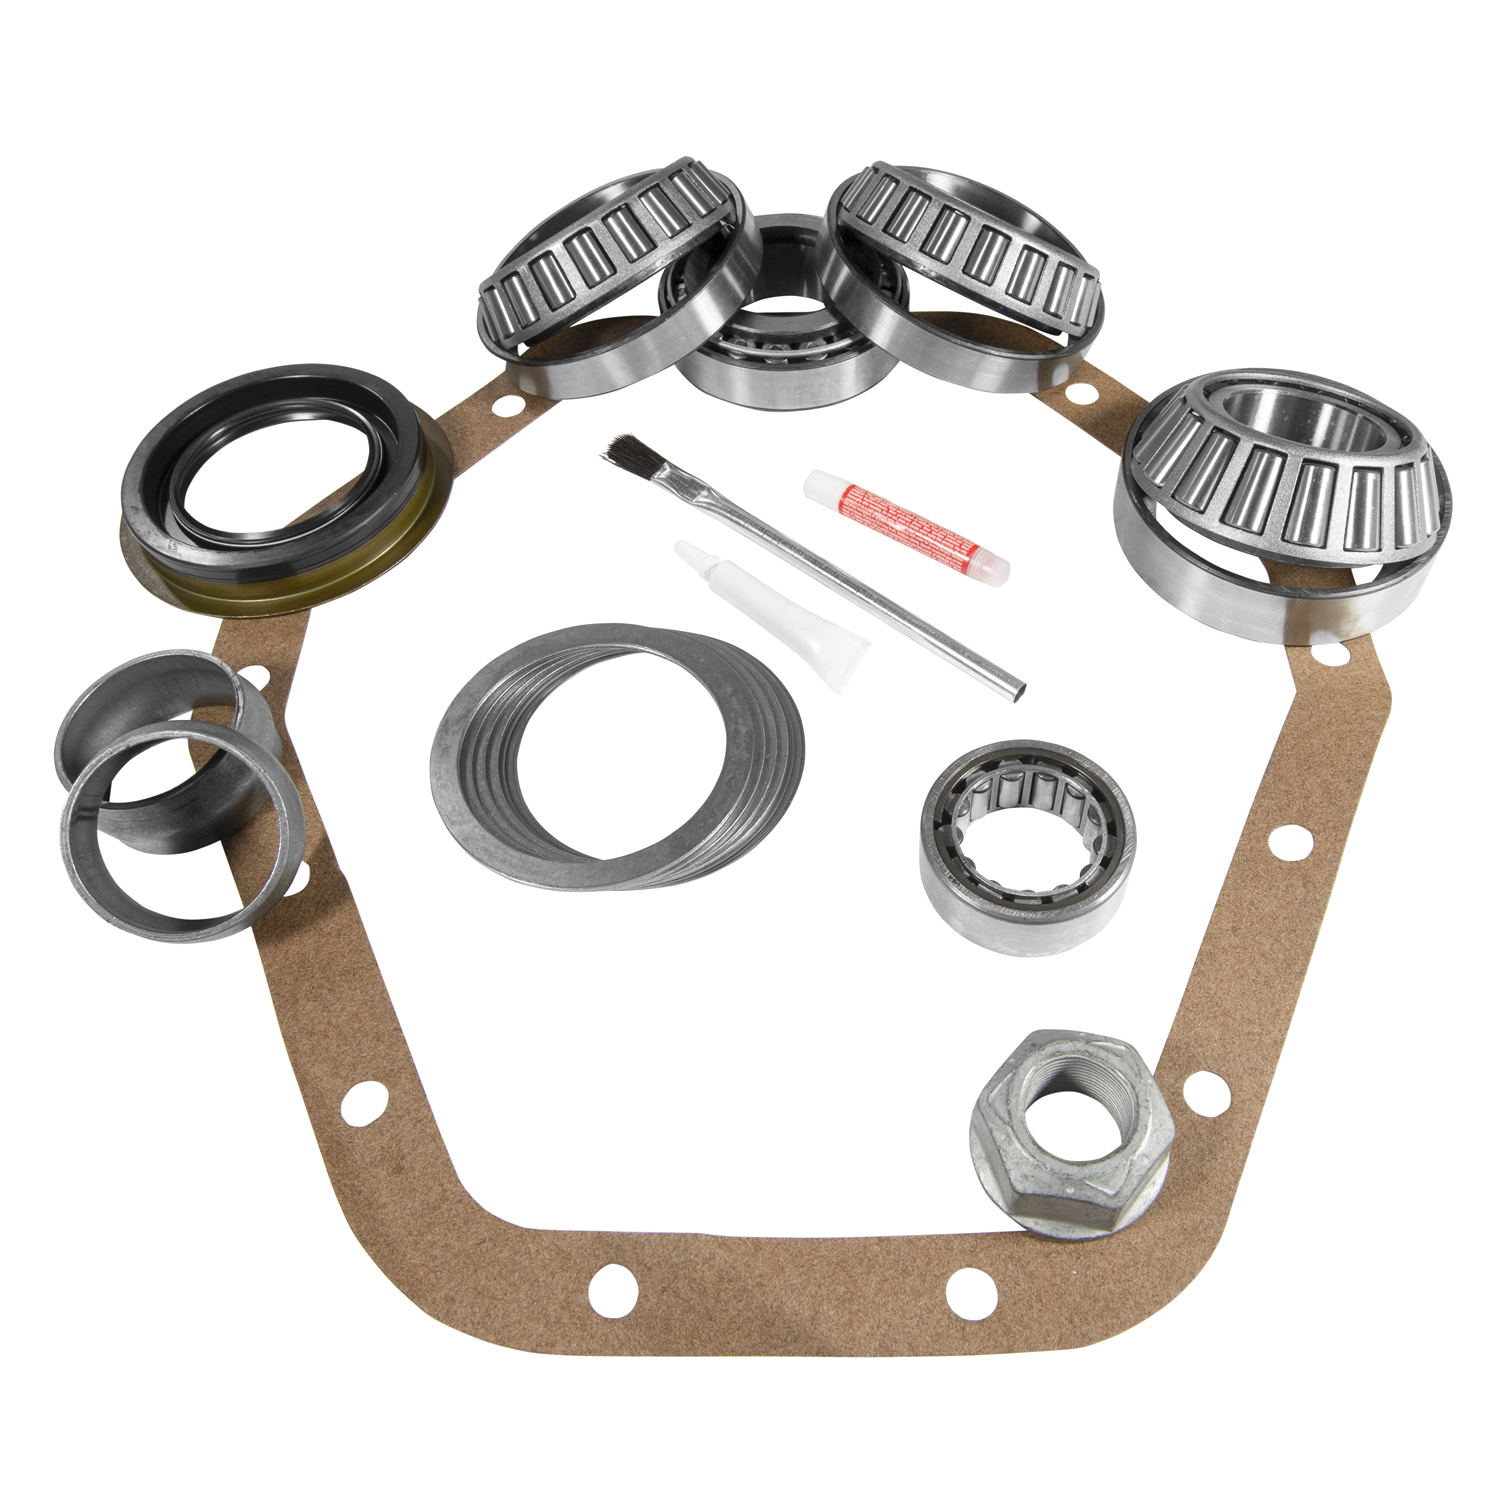 YK GM14T-C - Yukon Master Overhaul kit for GM '98 and newer 14T differential